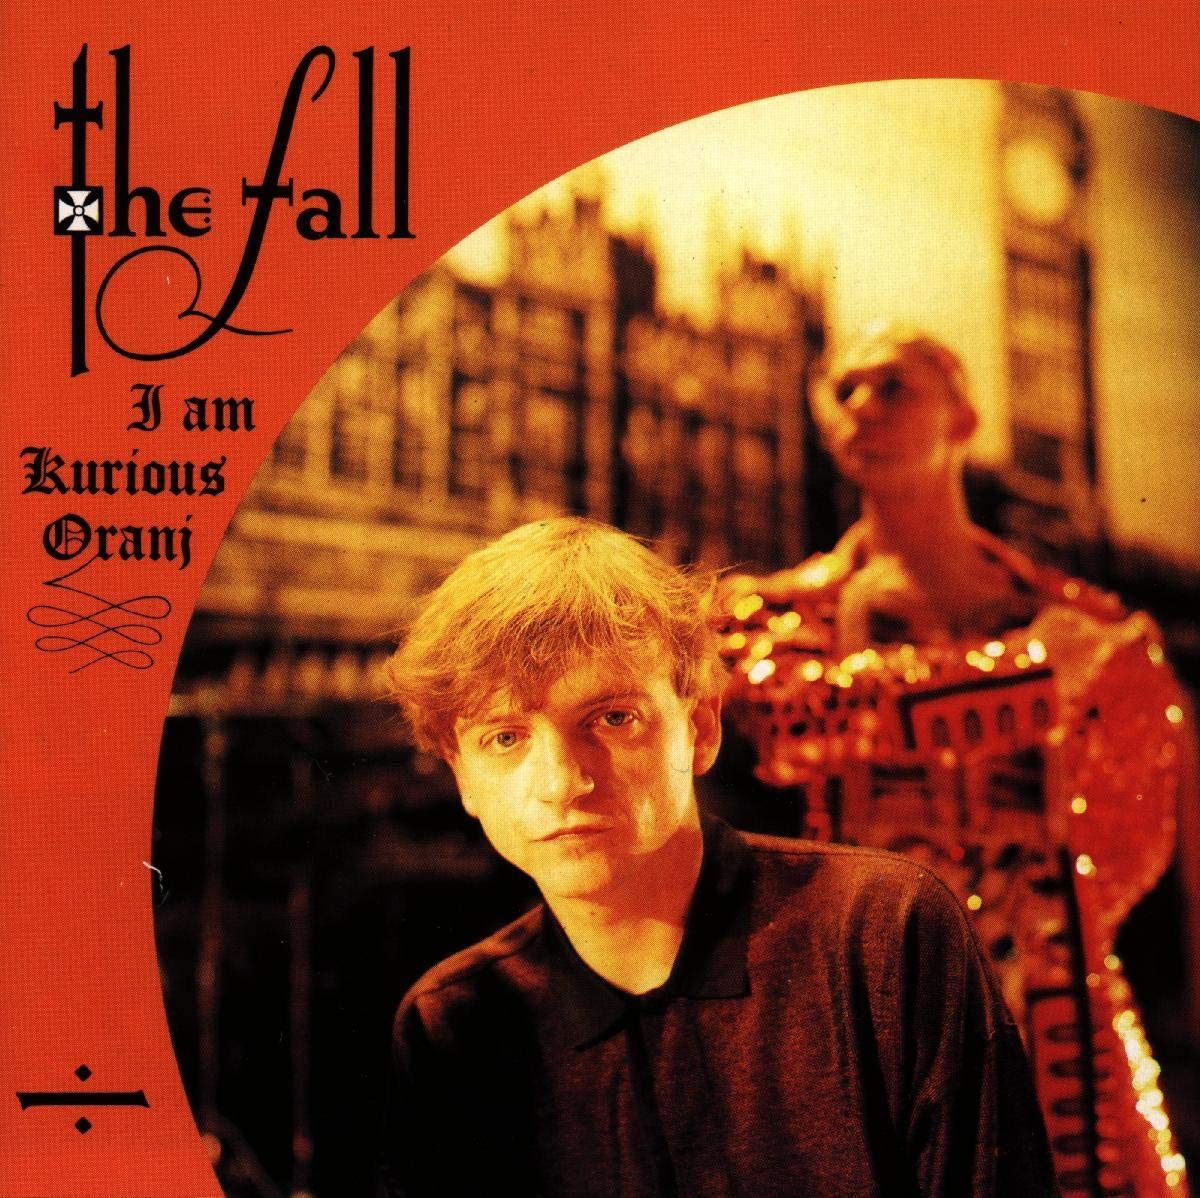 Fall/I Am Kurious Oranj [CD]